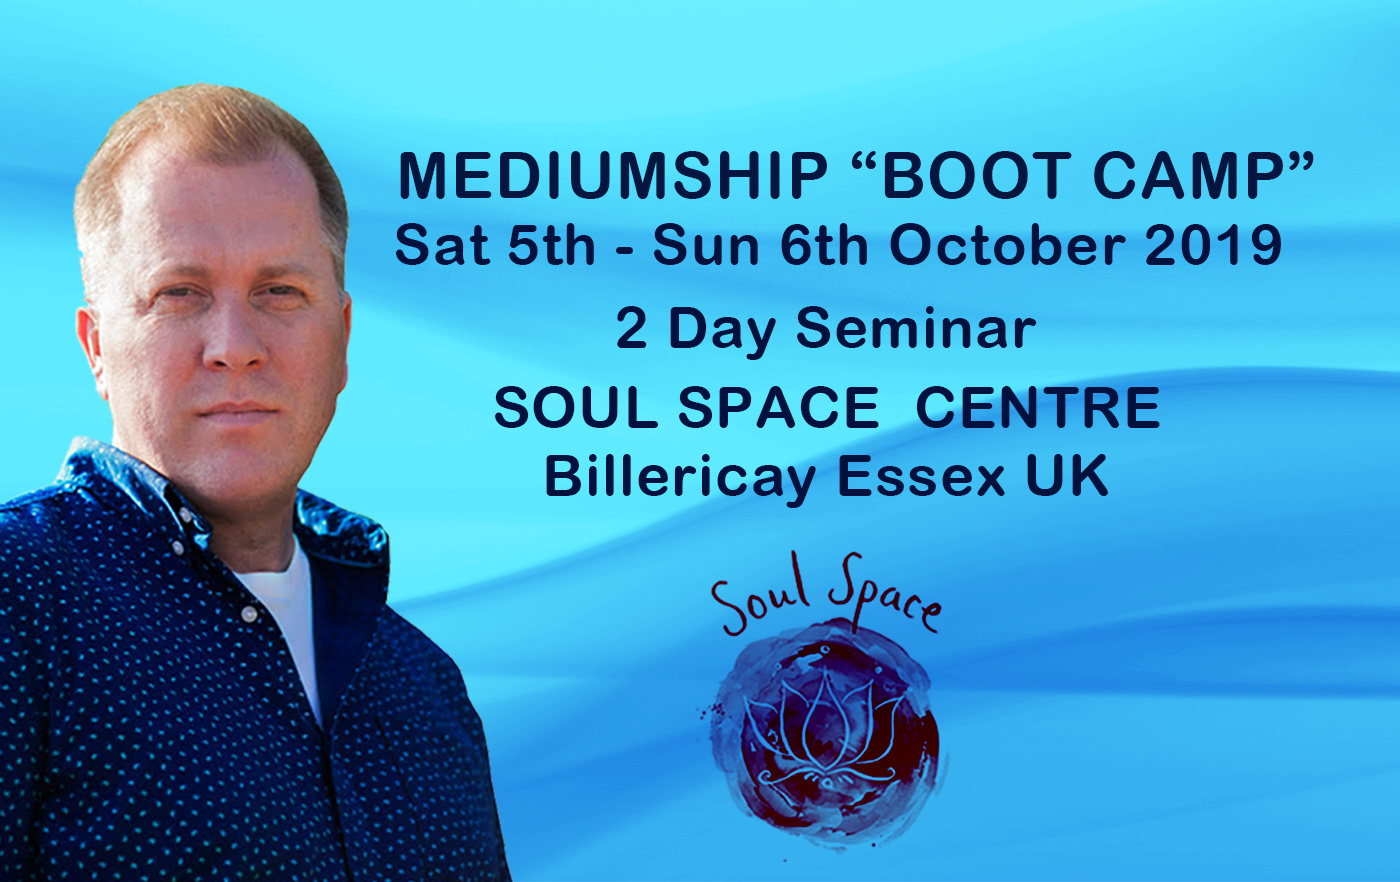 Tony Stockwell Soul Space Event October 5th-6th 2019